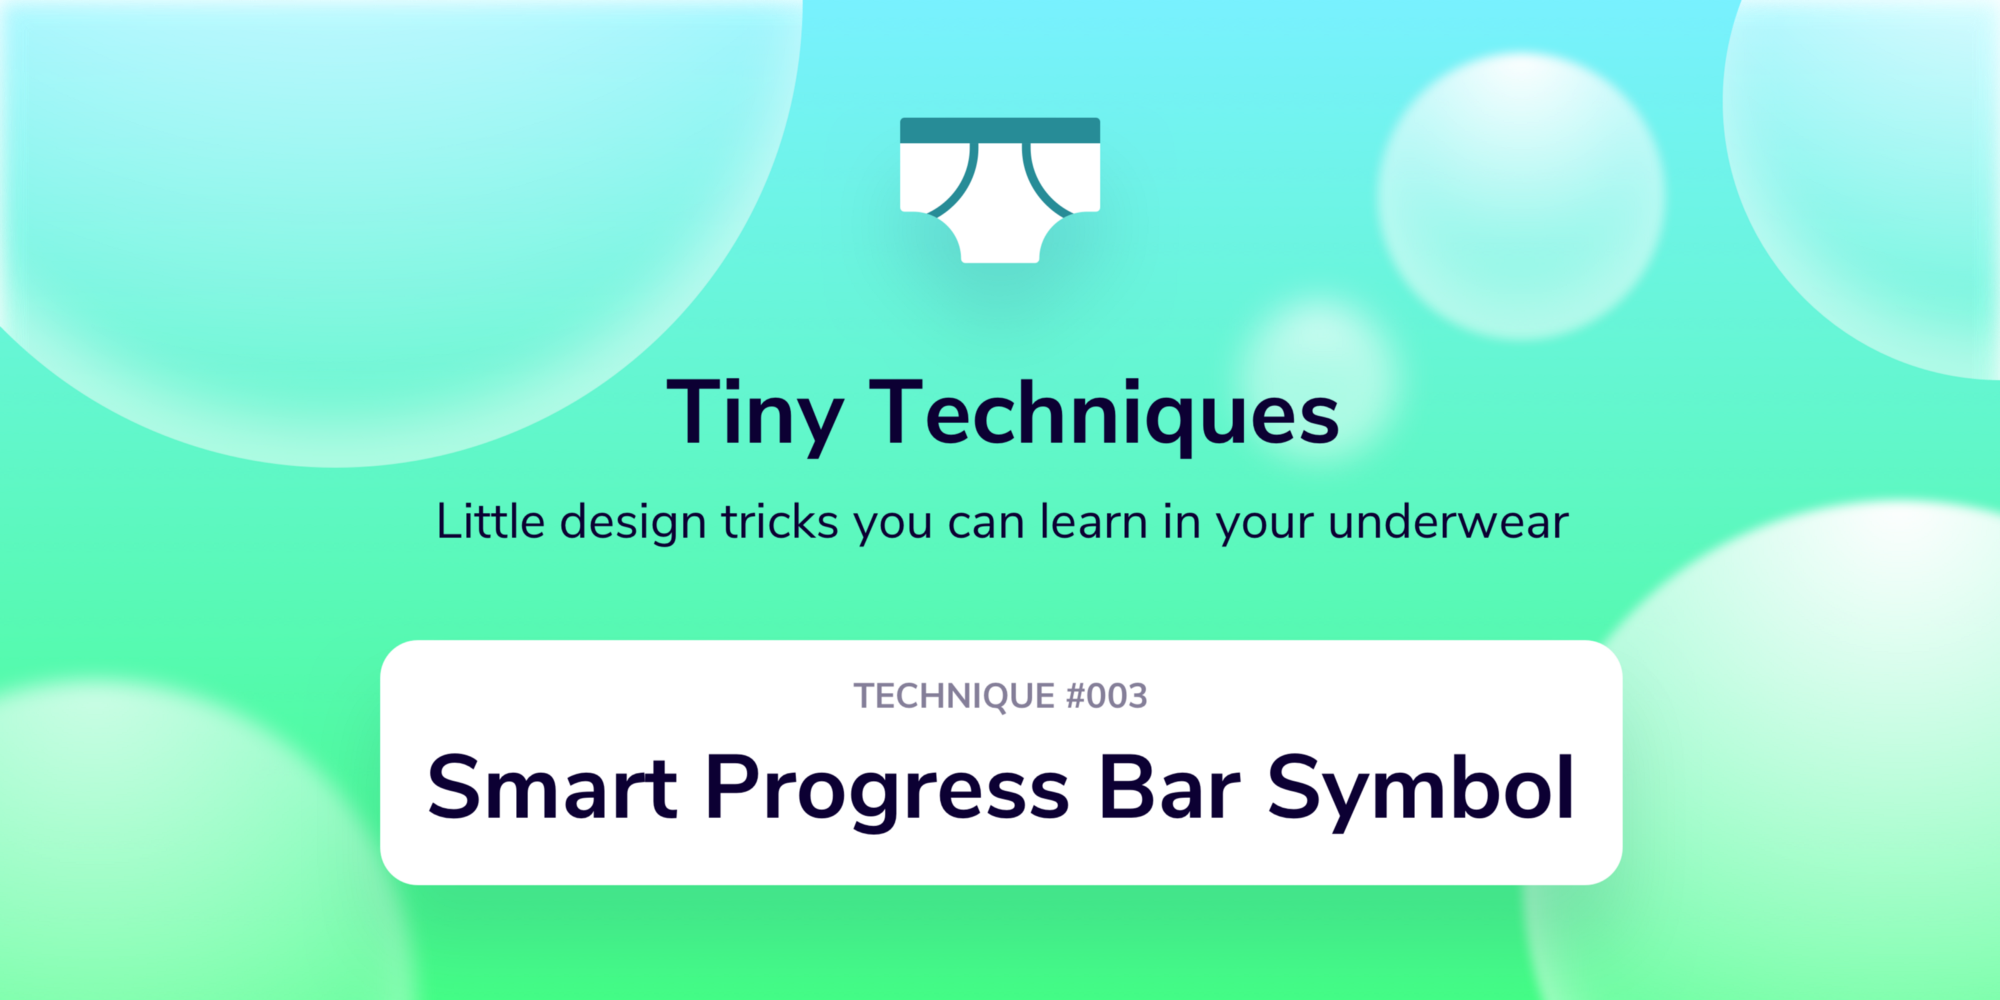 How to make a progress bar symbol in sketch that actually lets you tiny techniques biocorpaavc Images